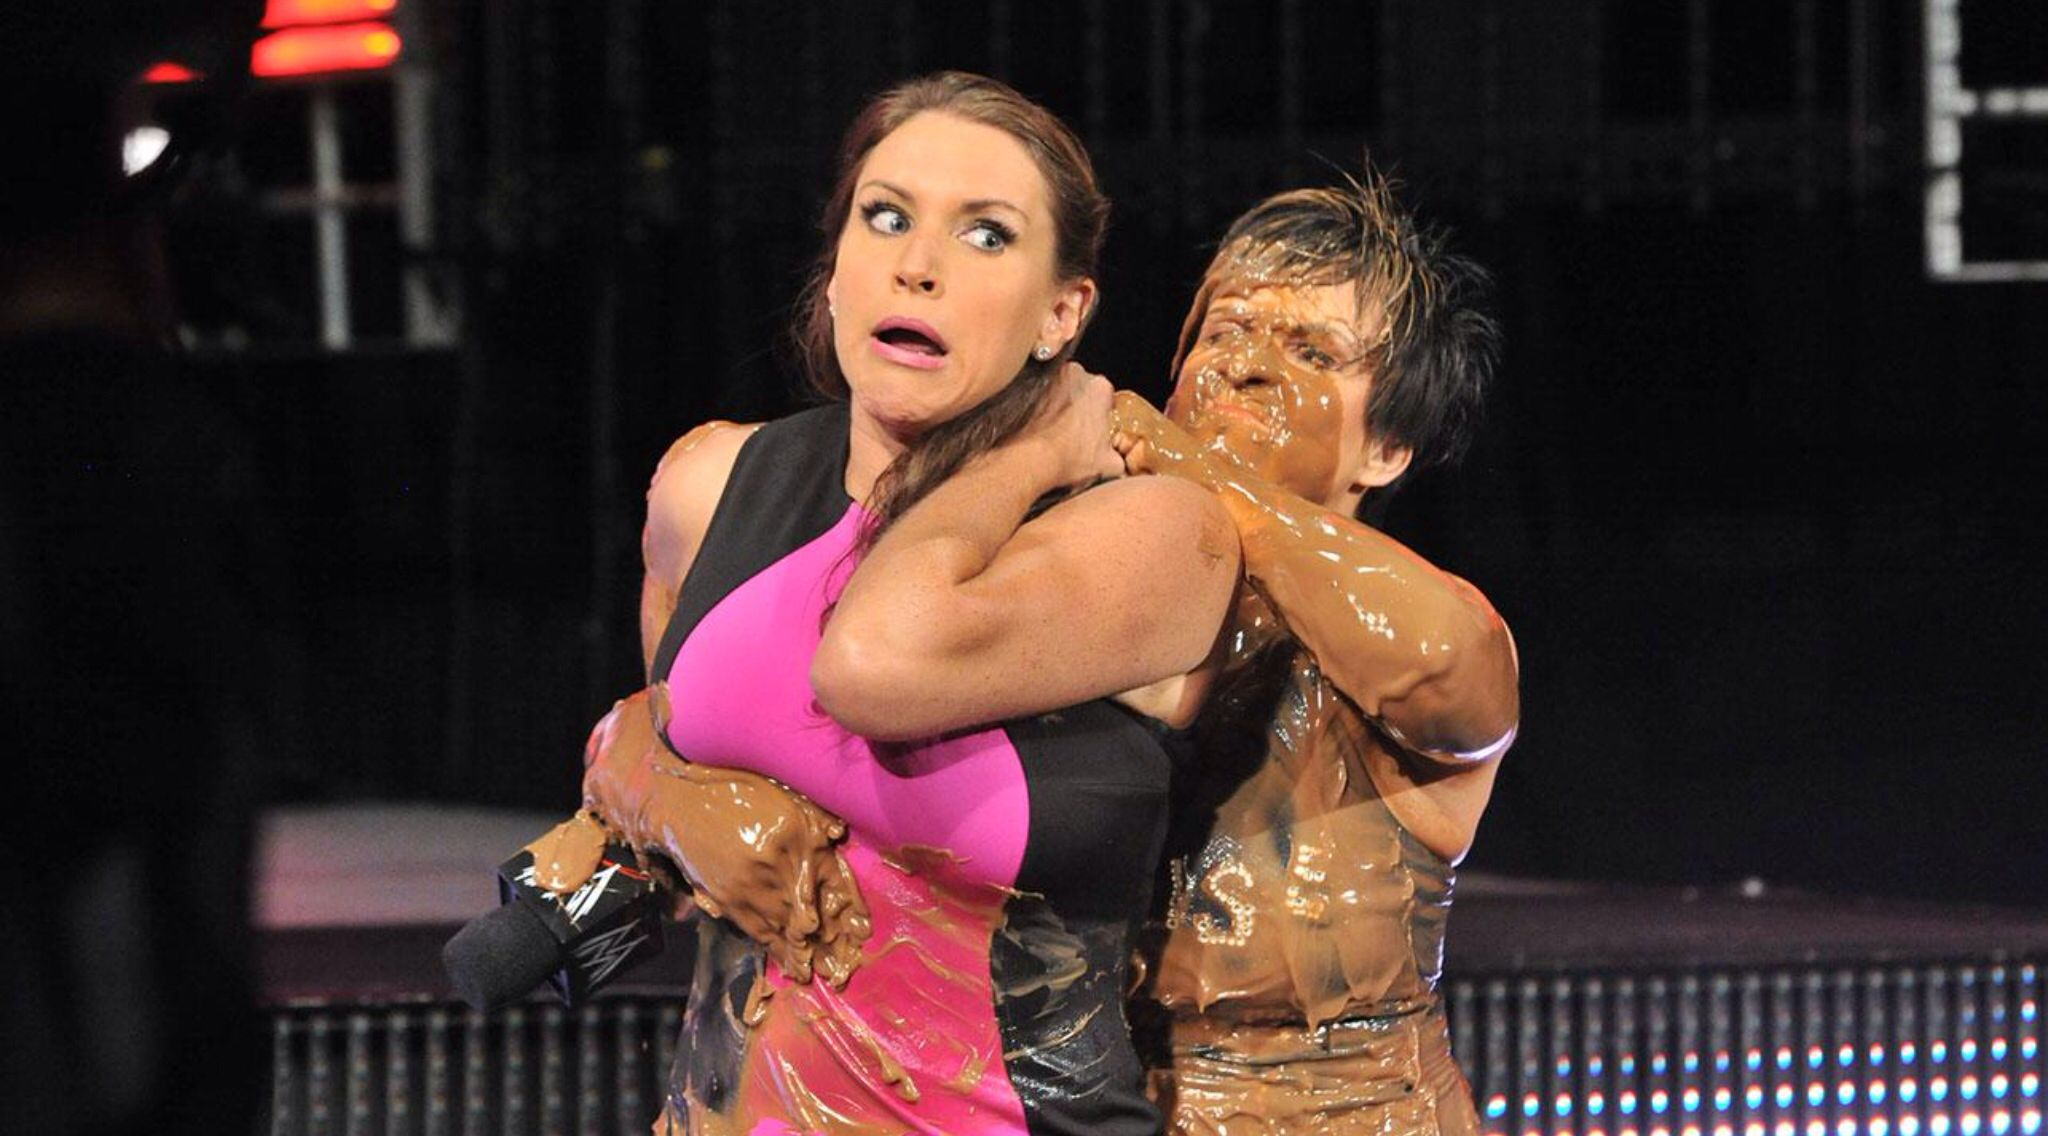 porn-wwe-vicky-gurreno-nude-wrestlers-largest-orgy